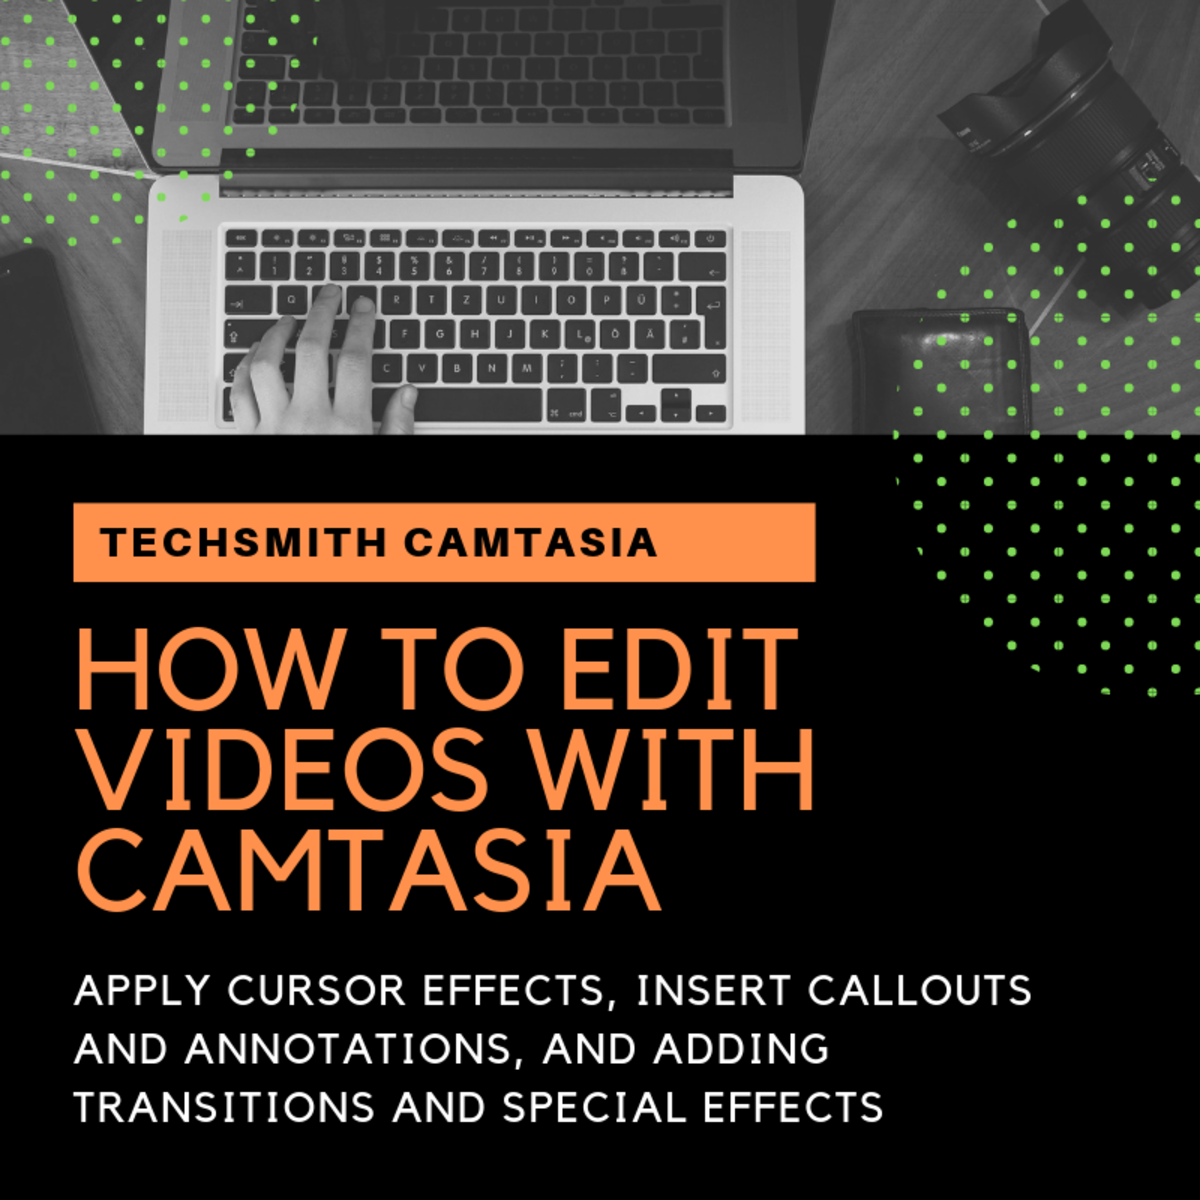 How to Edit Videos With Camtasia